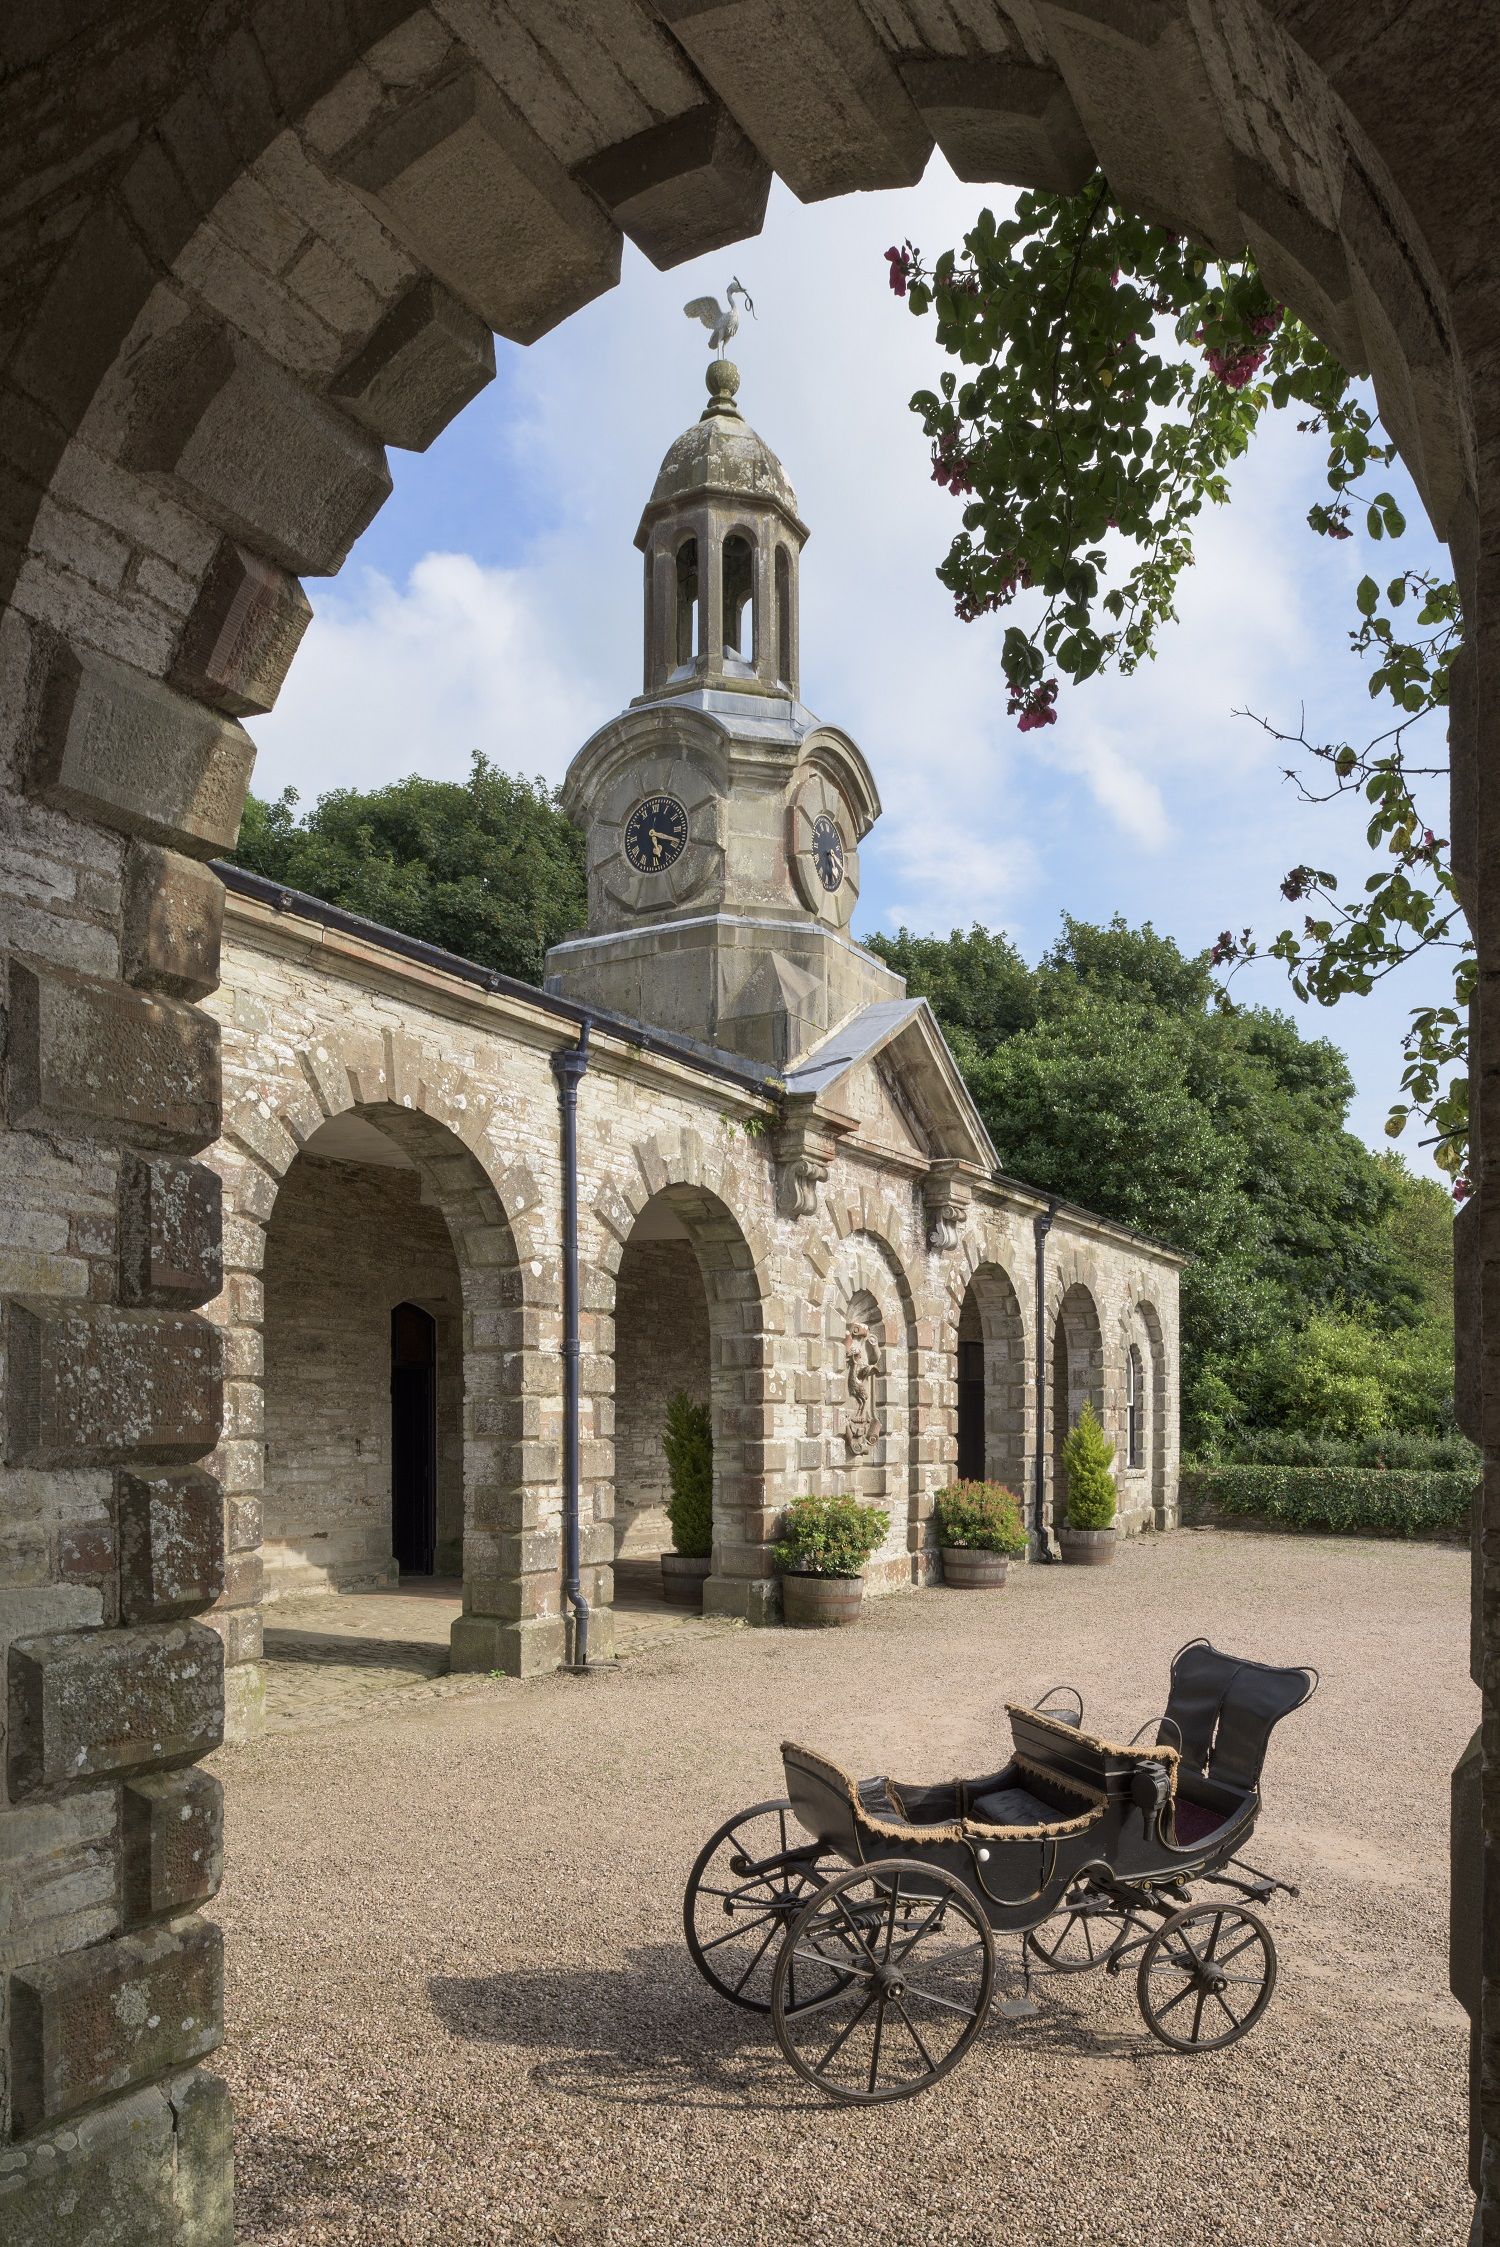 Child's carriage at Arlington Court and the National Trust Carriage Museum ©National Trust Images John Hammond